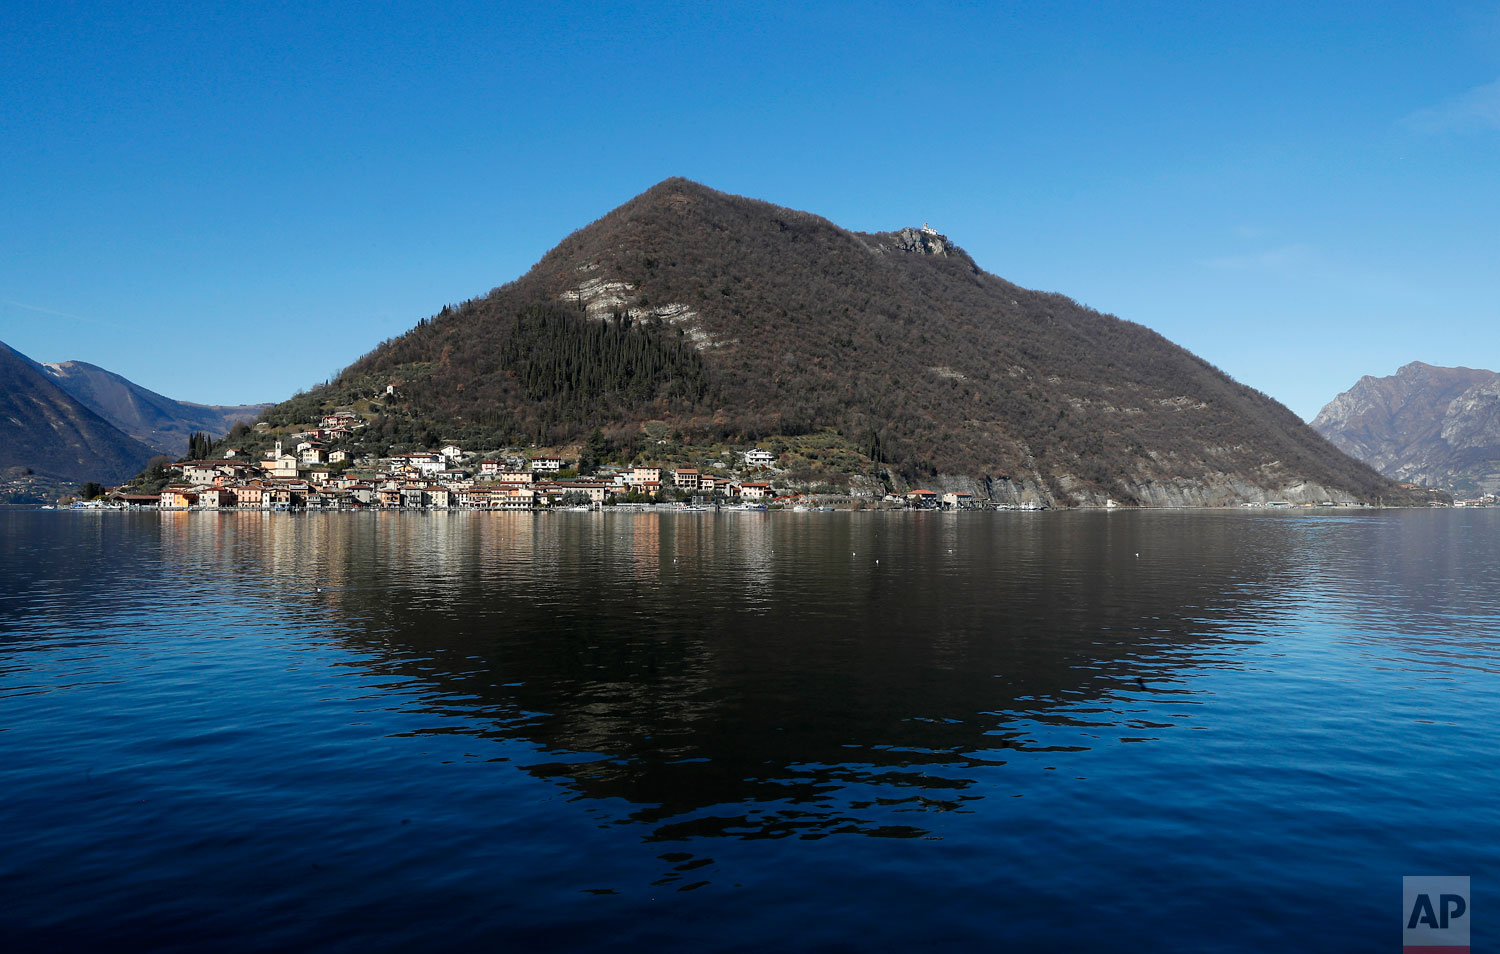 In this photo taken on Wednesday, Feb. 6, 2019, a view of Monte Isola, Lake Iseo, northern Italy. Step off the ferry onto Monte Isola and it feels like going back in time.  (AP Photo/Antonio Calanni)